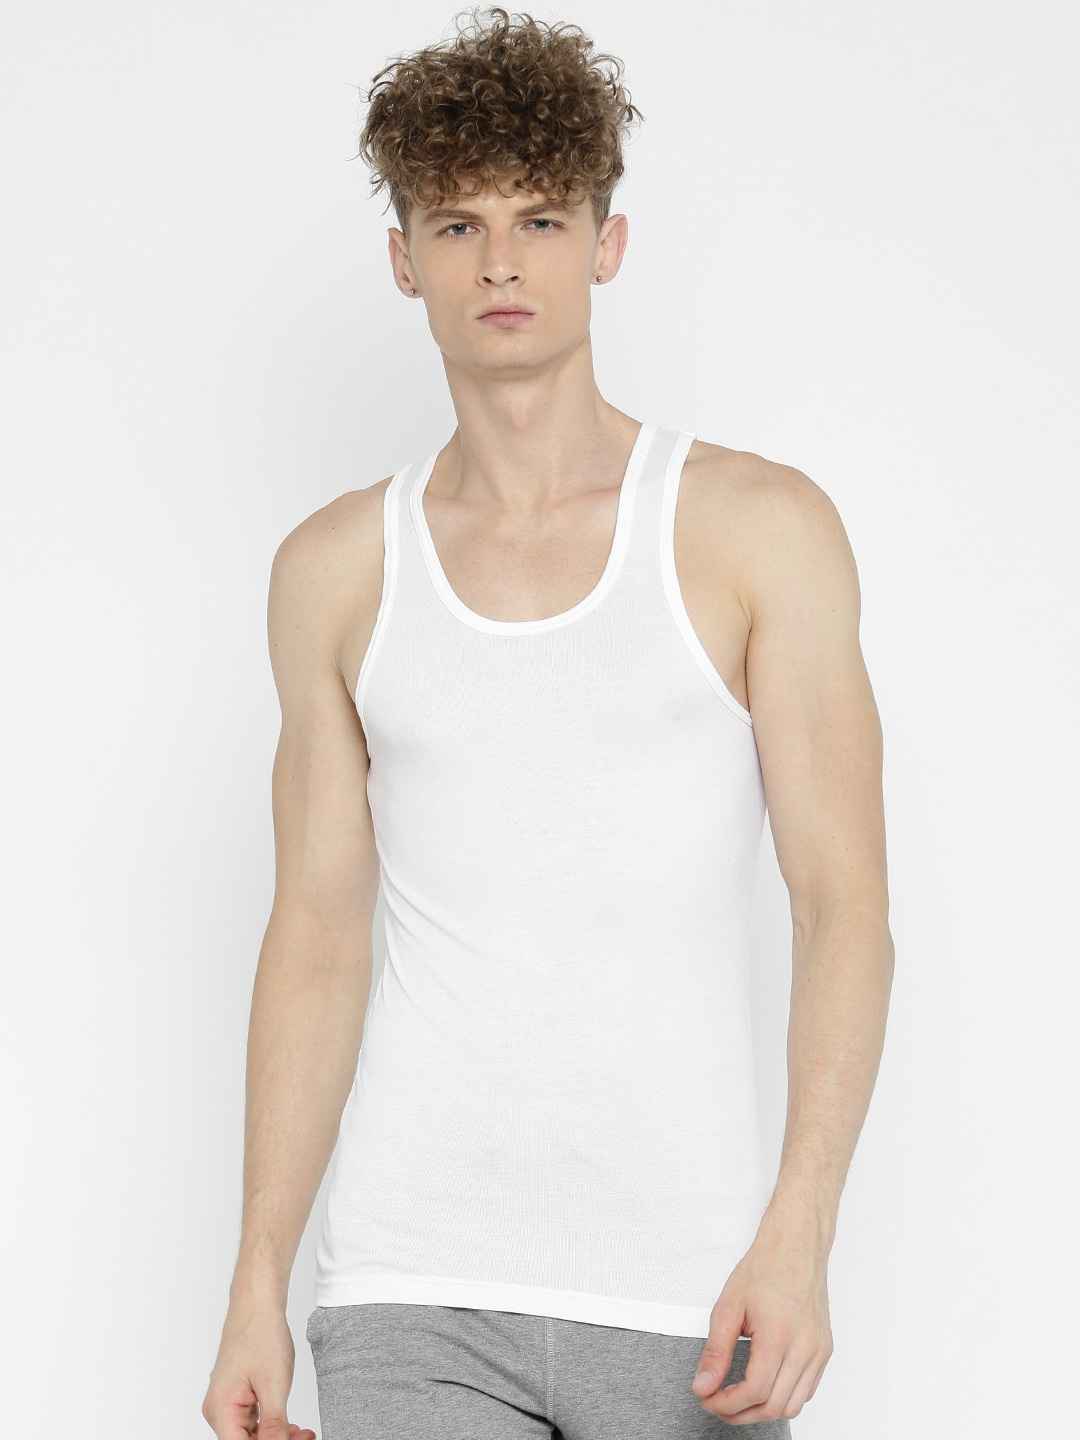 f5587e2aed2fec Sbi Card Offers Innerwear Vests - Buy Sbi Card Offers Innerwear Vests  online in India